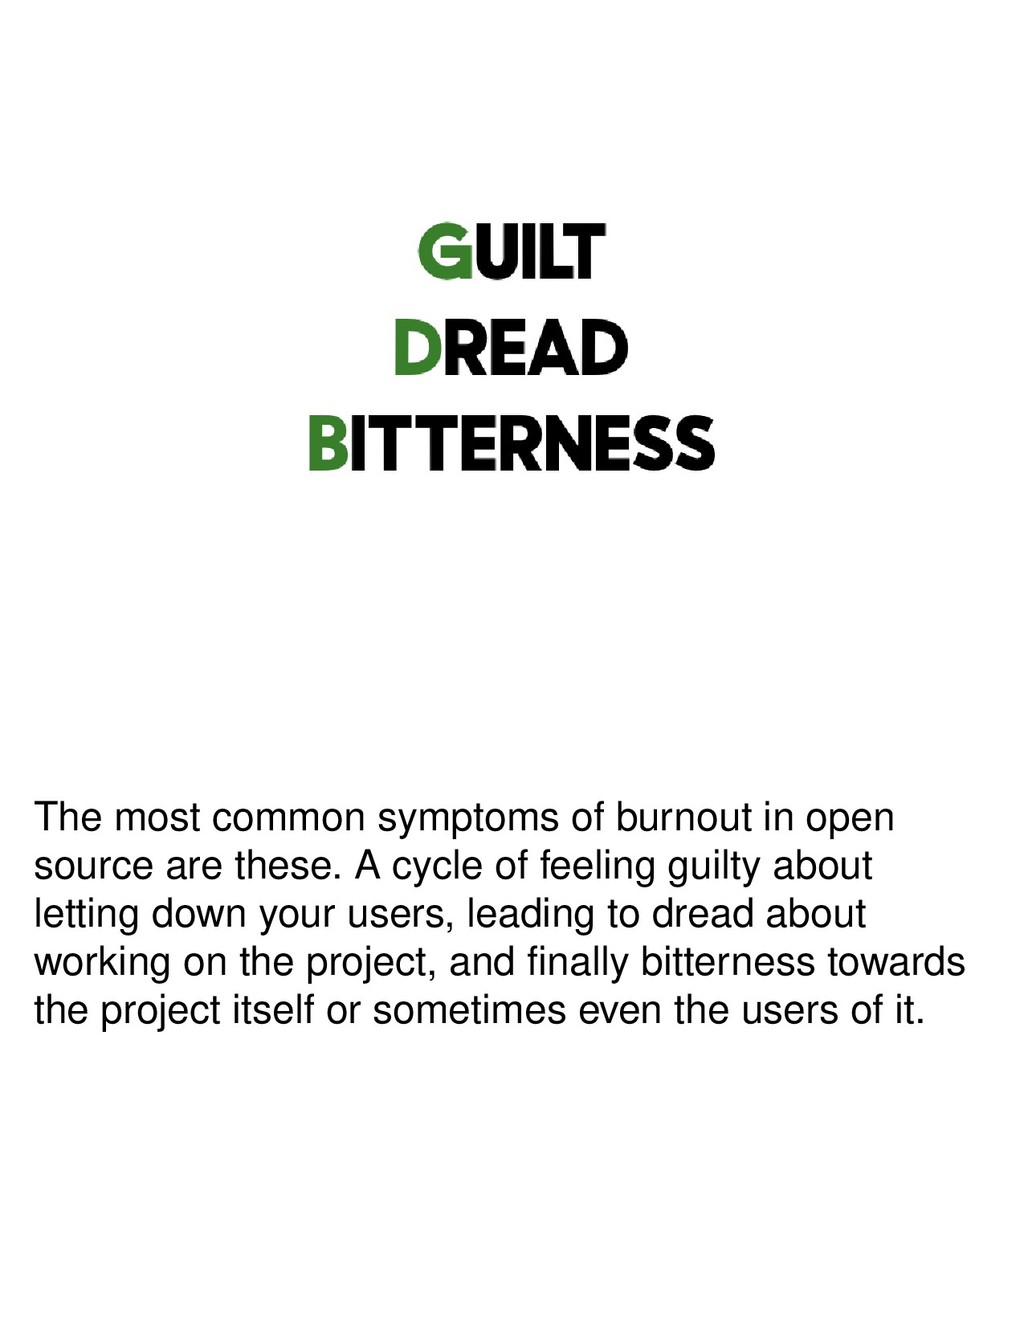 The most common symptoms of burnout in open sou...